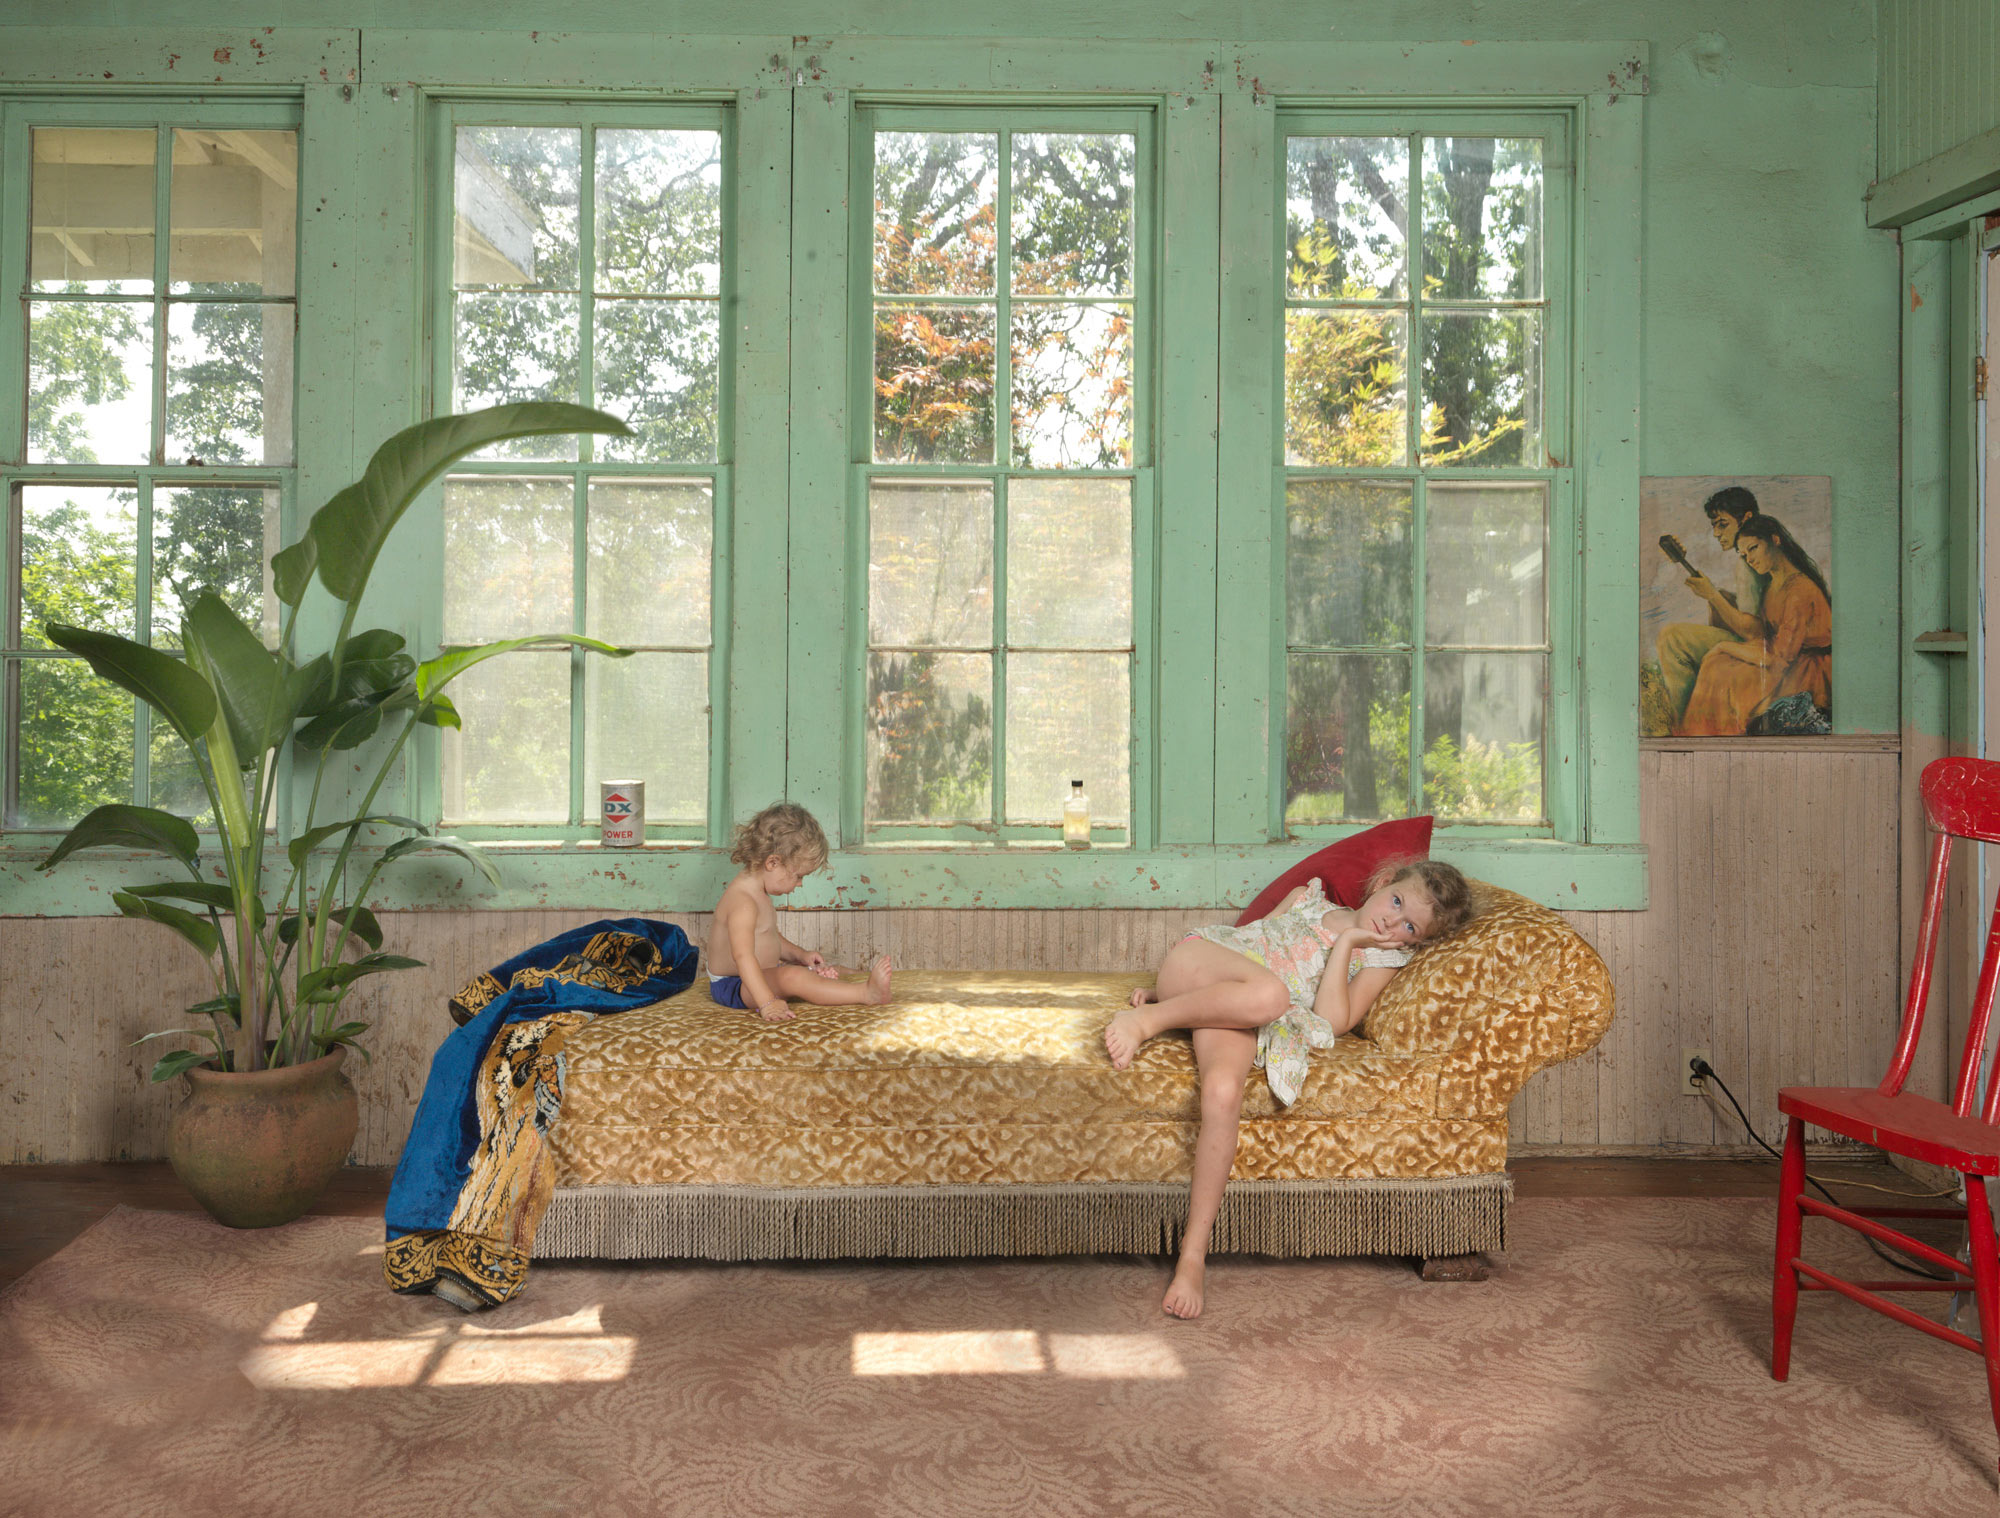 From the series Homegrown